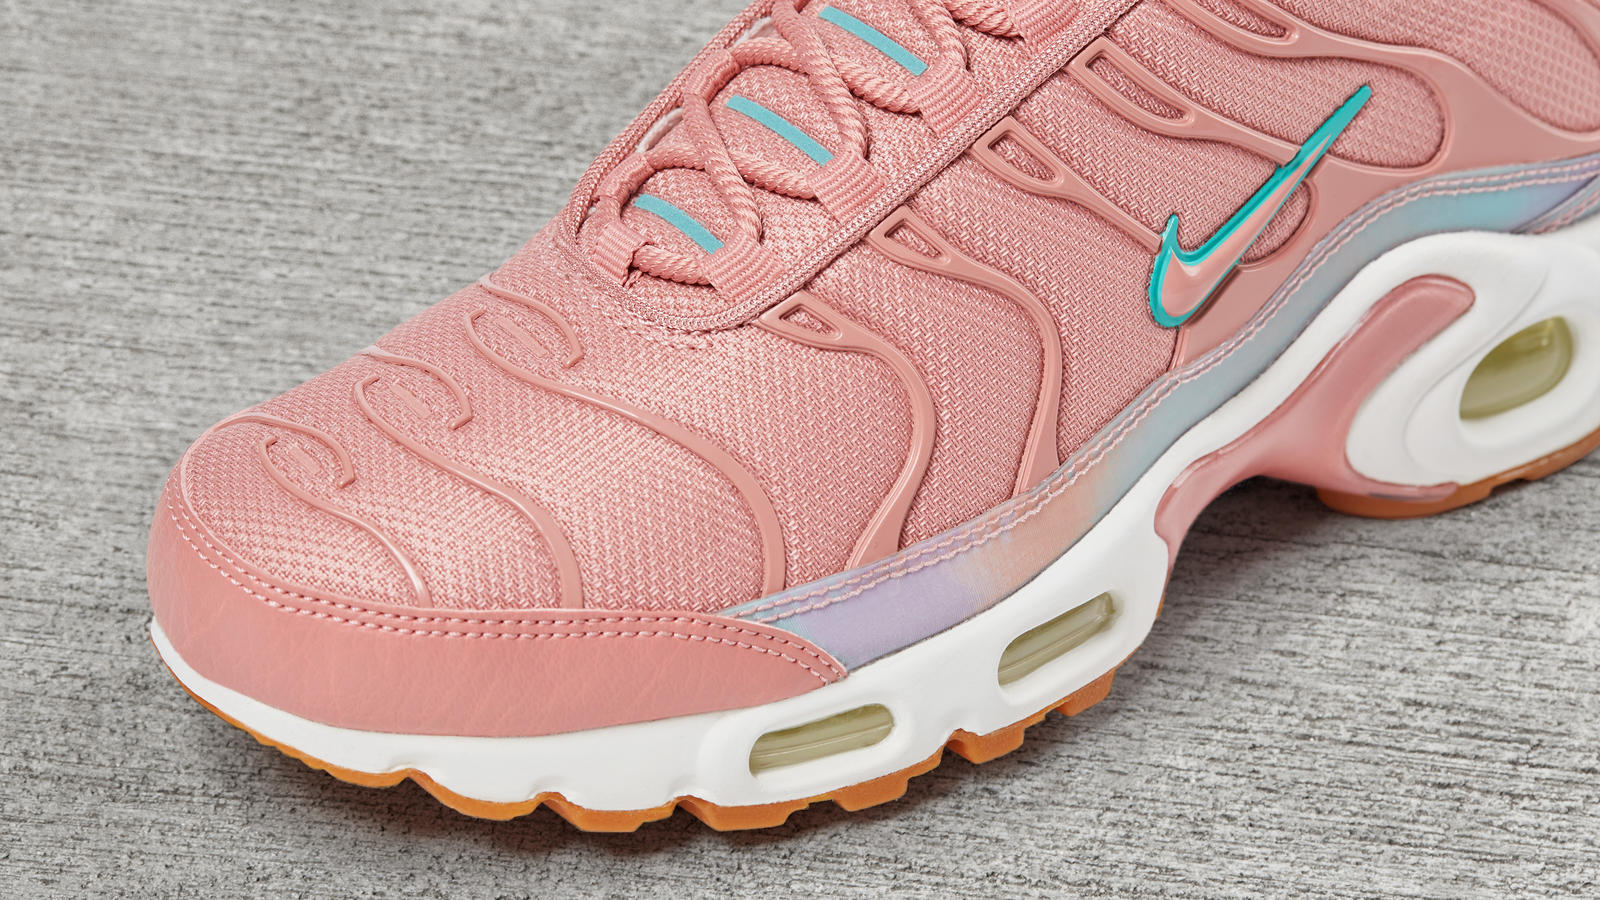 wholesale dealer 2f1ee 72b58 Nike Air Max Plus - Nike News